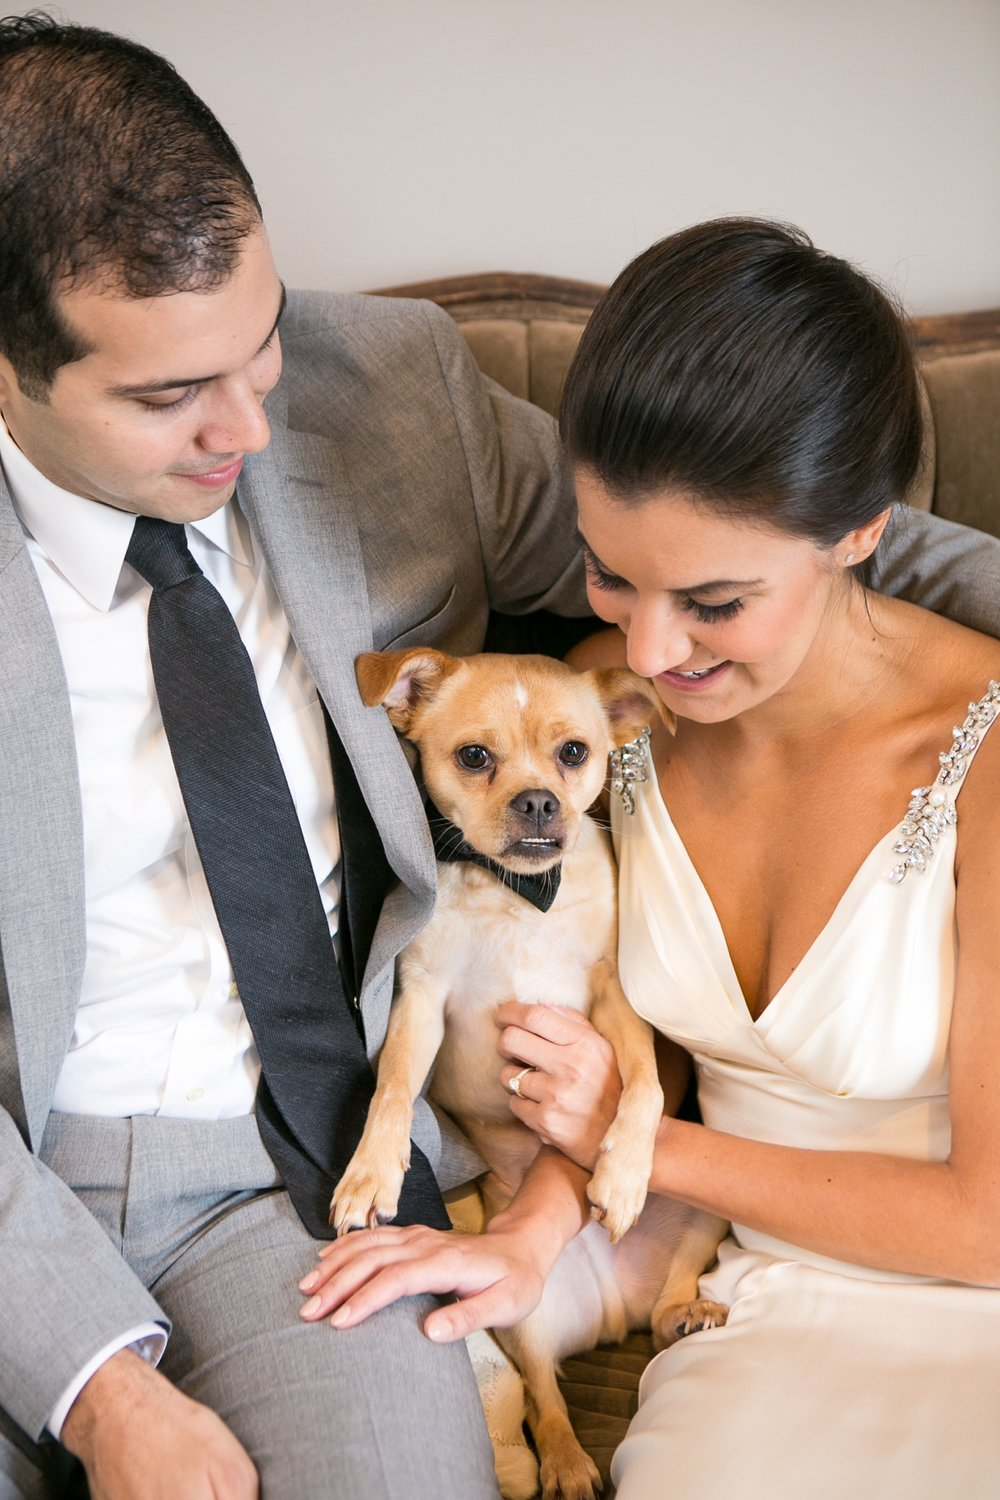 Nashville Wedding Photographer | Dog-Friendly Wedding